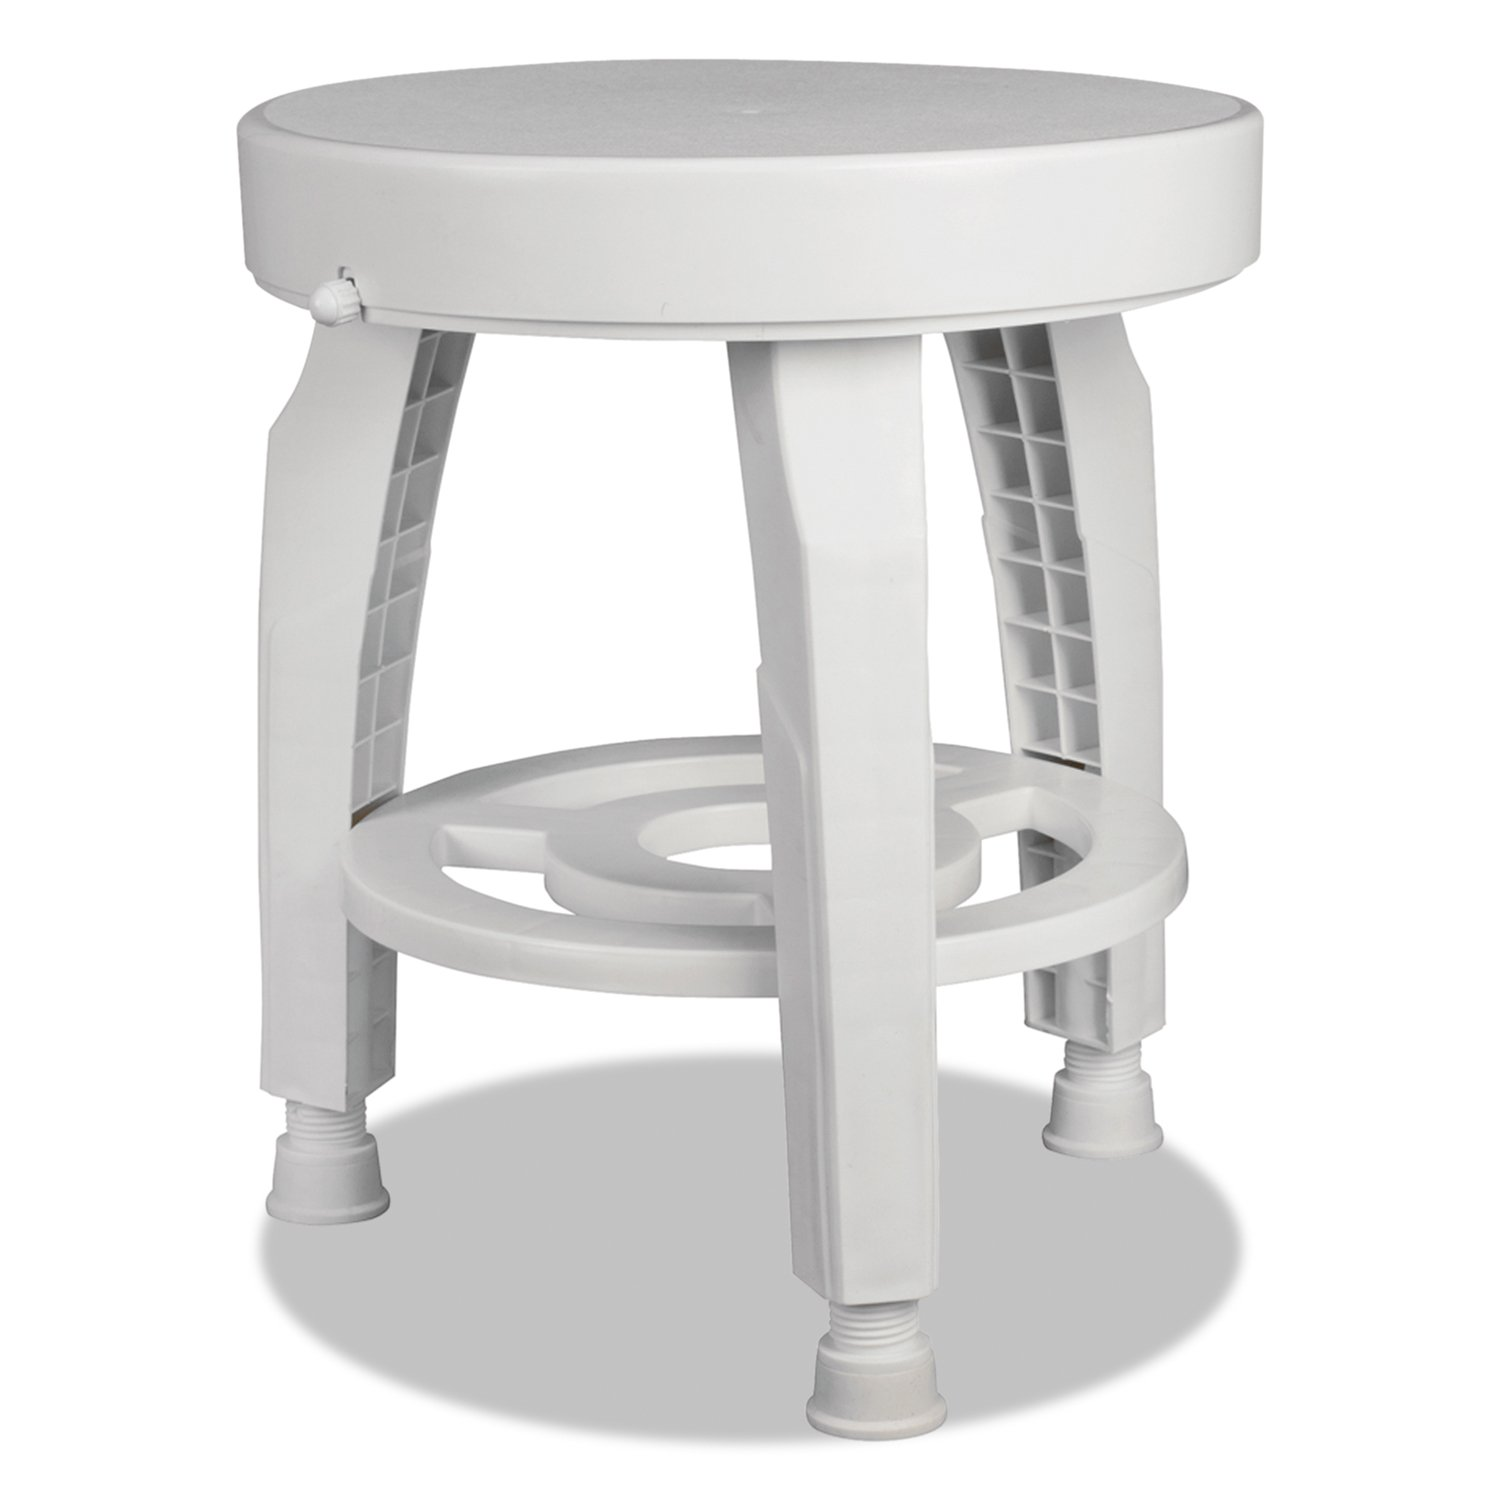 HealthSmart Rotating Bath and Shower Stool Chair with Germ-Free Protection and Storage Shelf, No Tools Needed, White 522-9810-1900